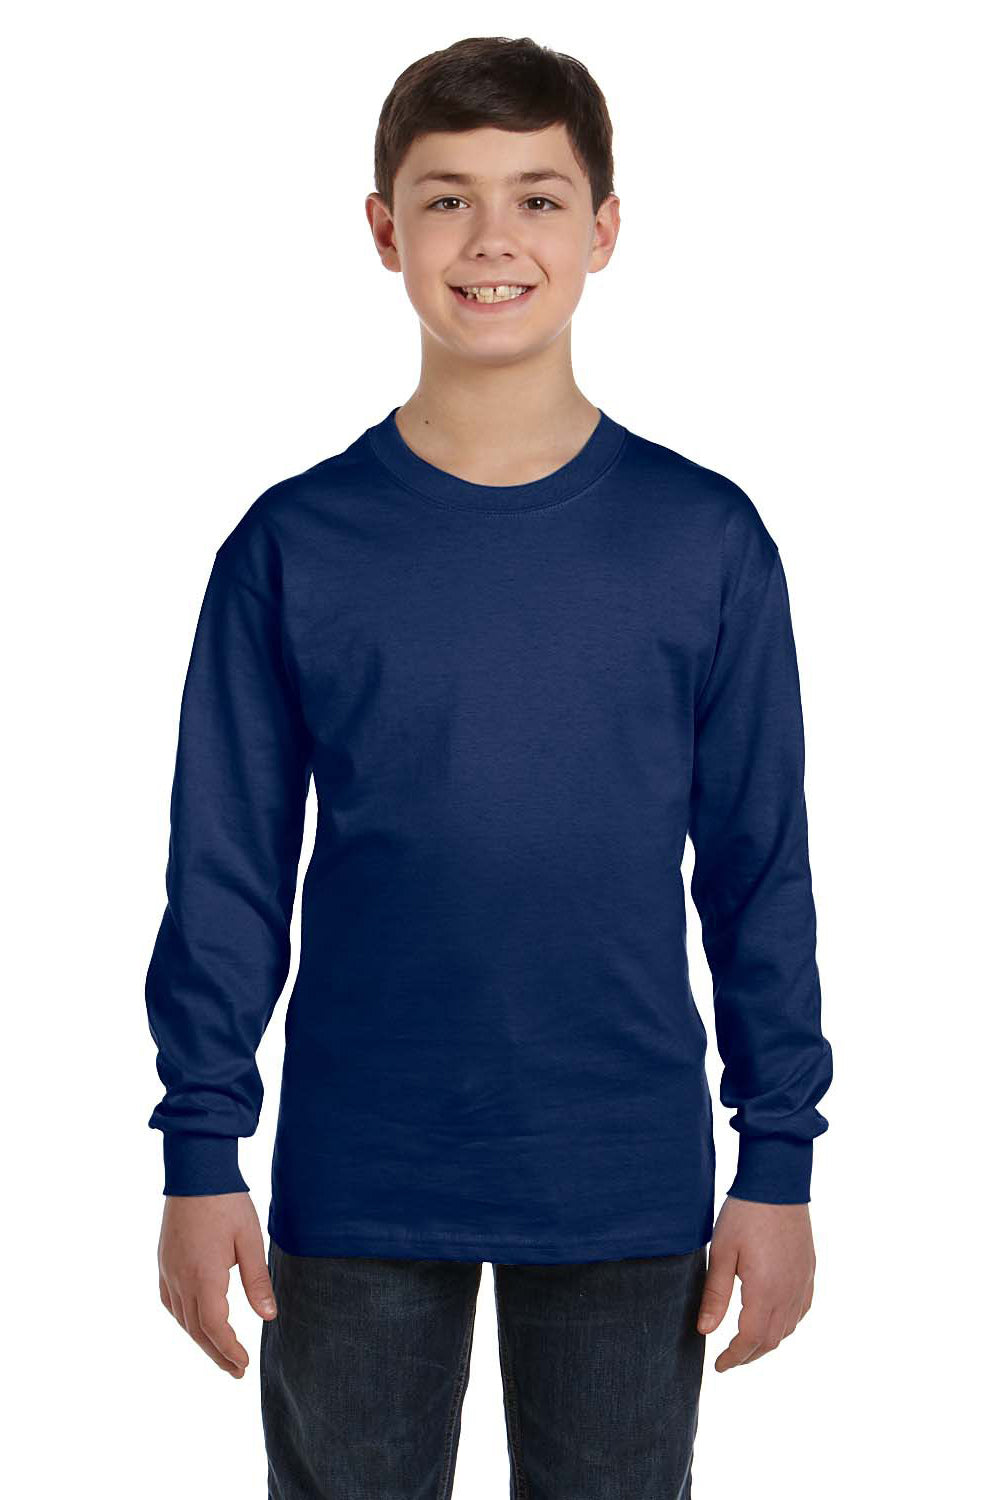 Gildan G540B Youth Long Sleeve Crewneck T-Shirt Navy Blue Front